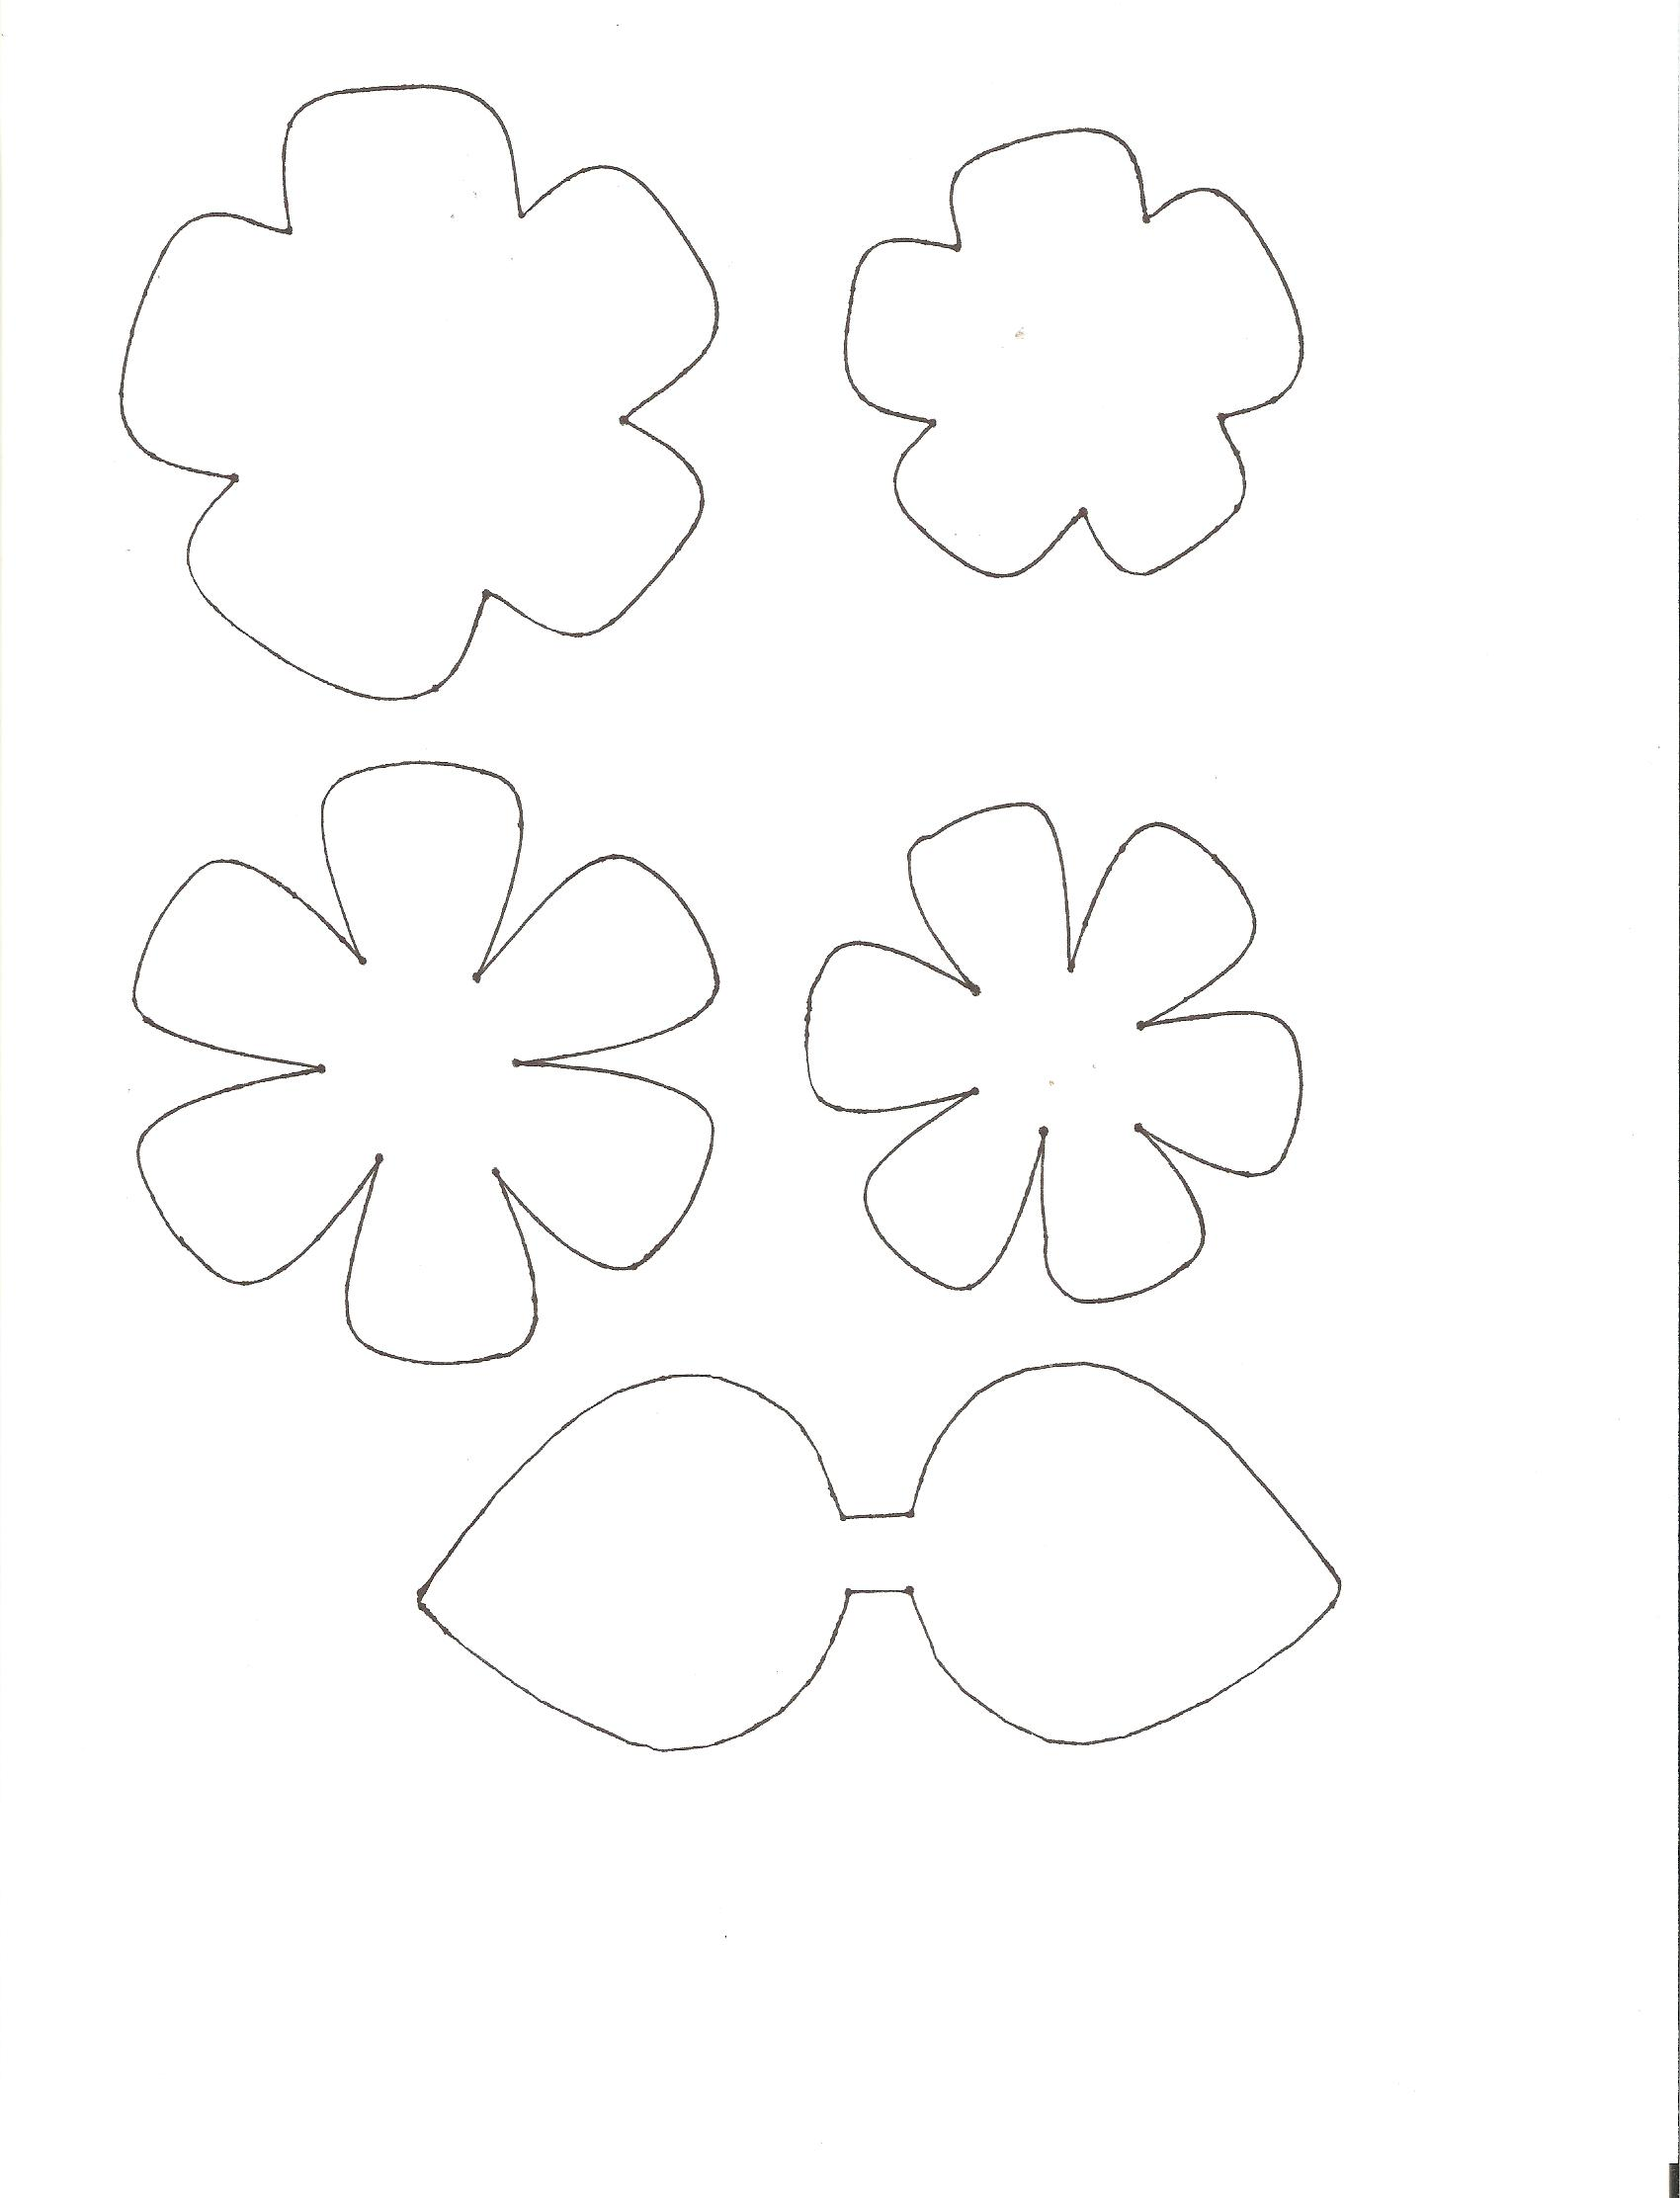 Free Template For Flower, Download Free Clip Art, Free